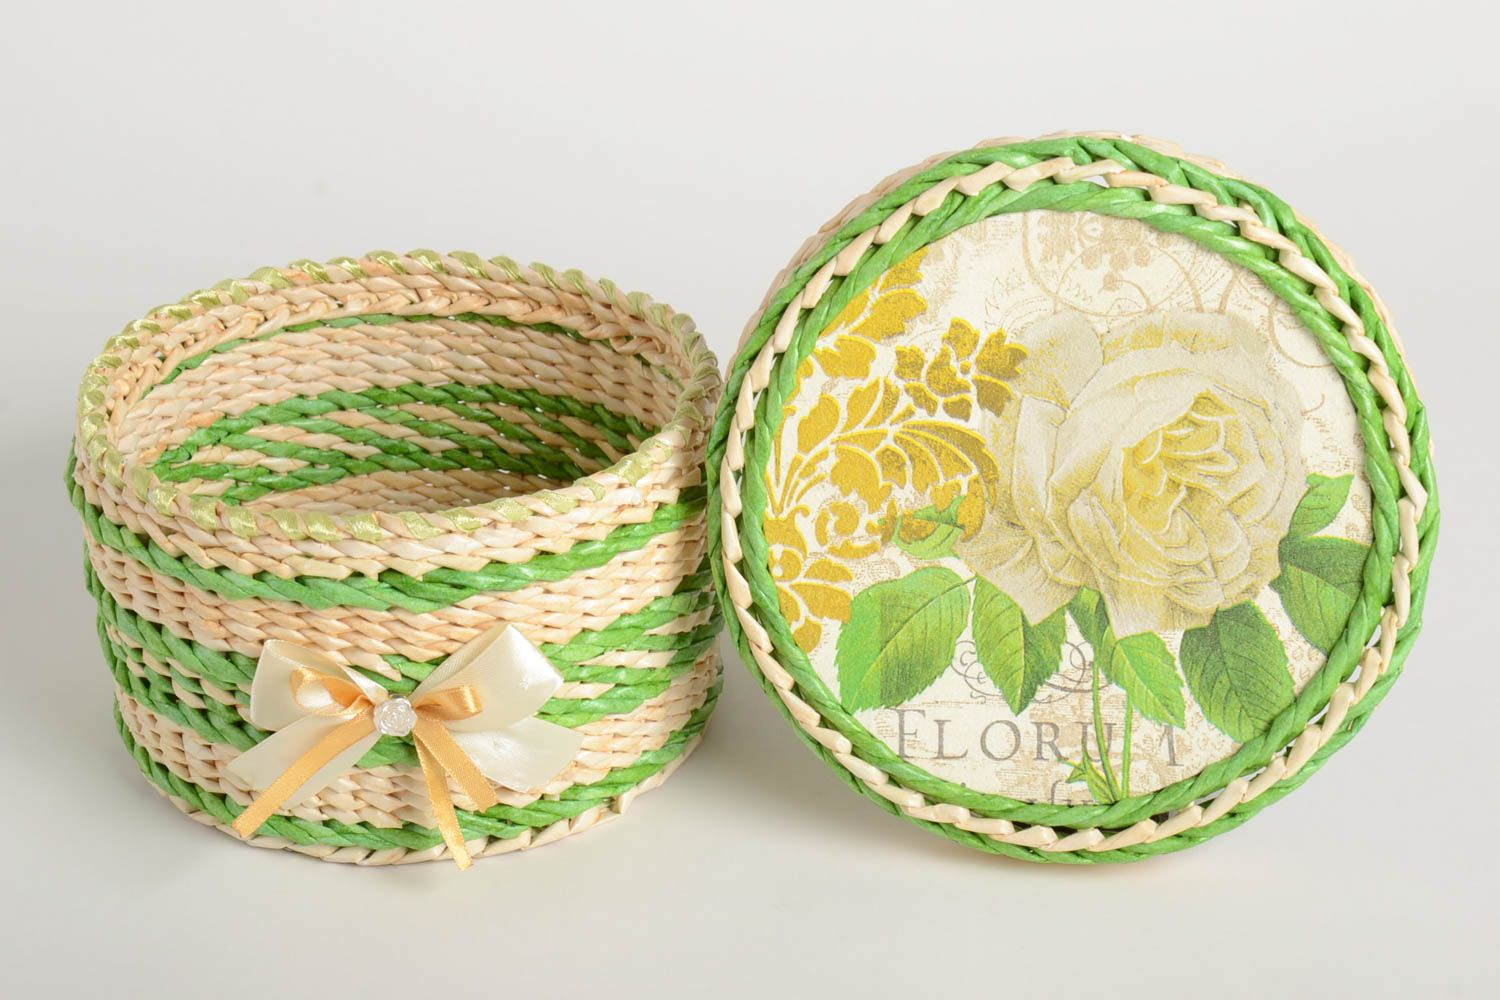 boxes Beautiful handmade paper basket jewelry box design newspaper craft gift ideas - MADEheart.com